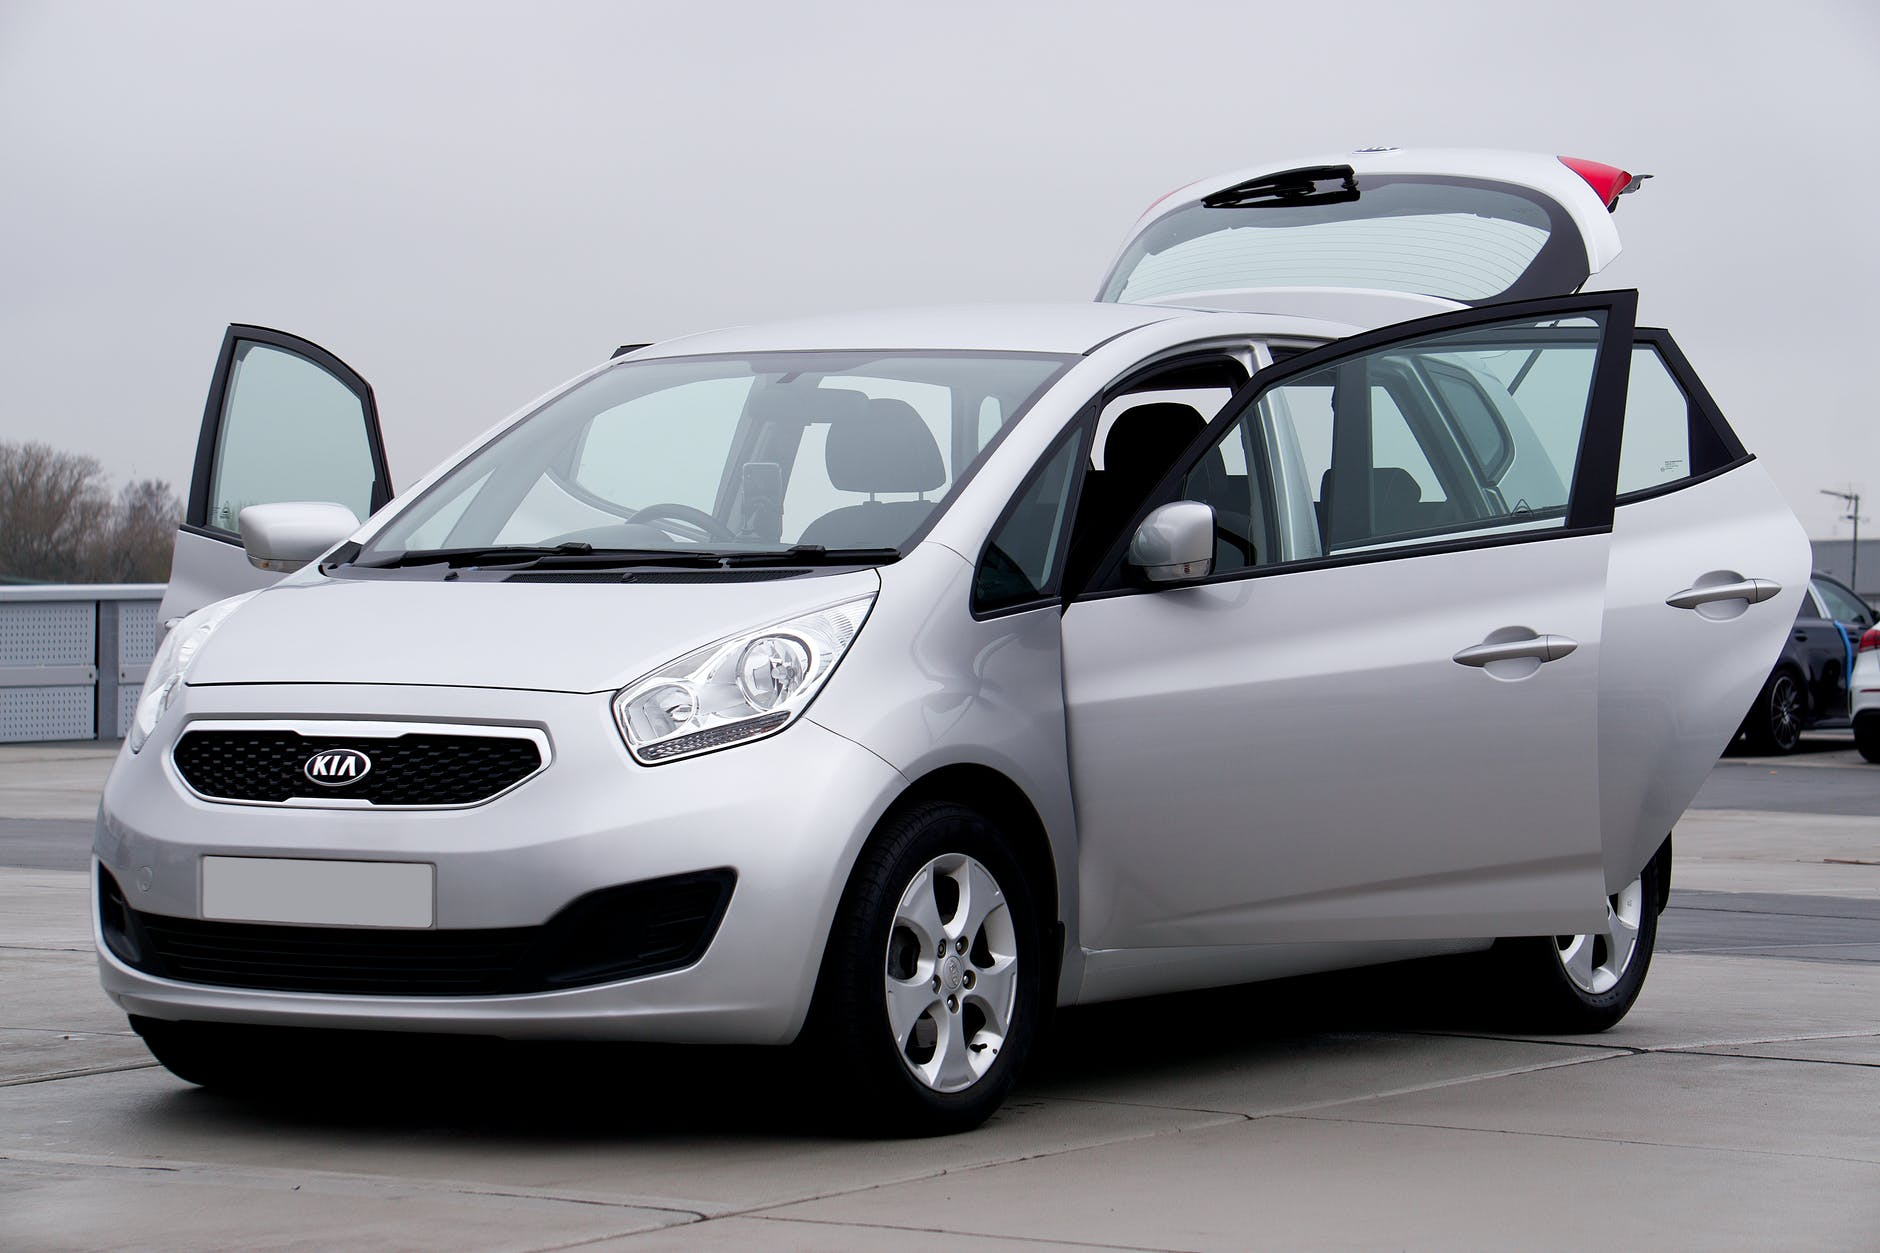 A KIA vehicle with all doors open at one of the demo cars for sale Brisbane dealerships yard